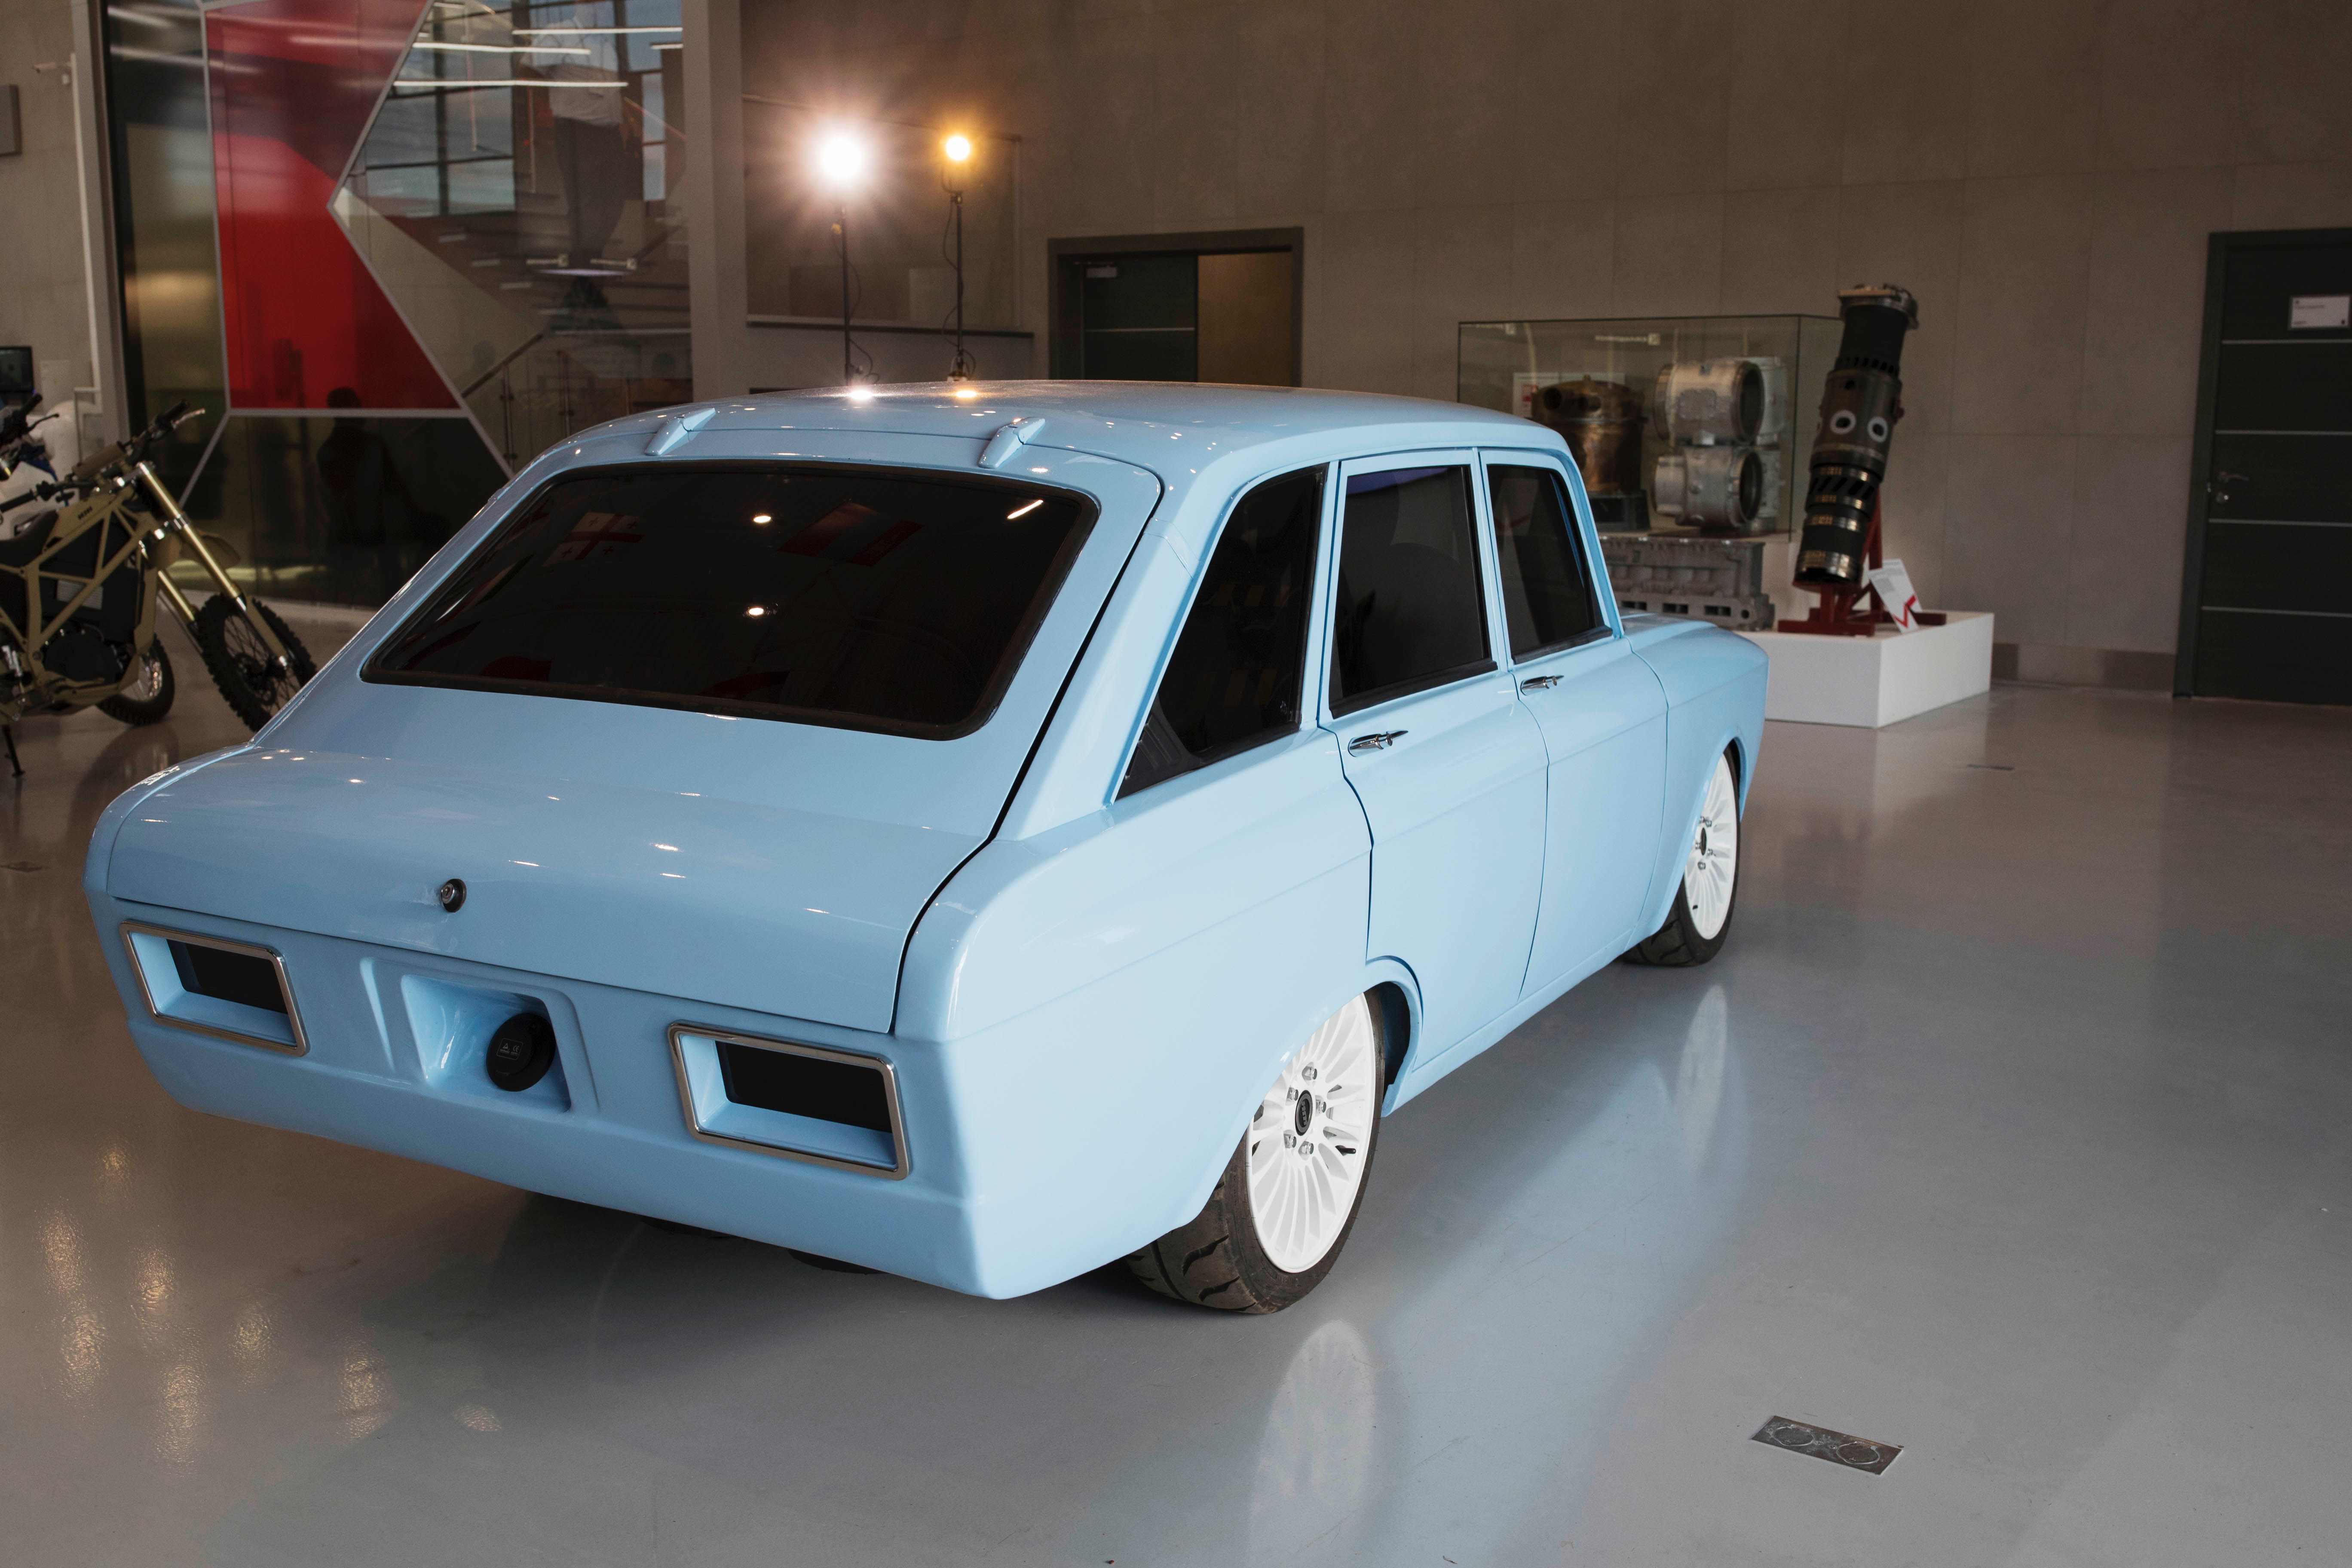 electric car, From Russia with love, or something, an electric car, ClassicCars.com Journal